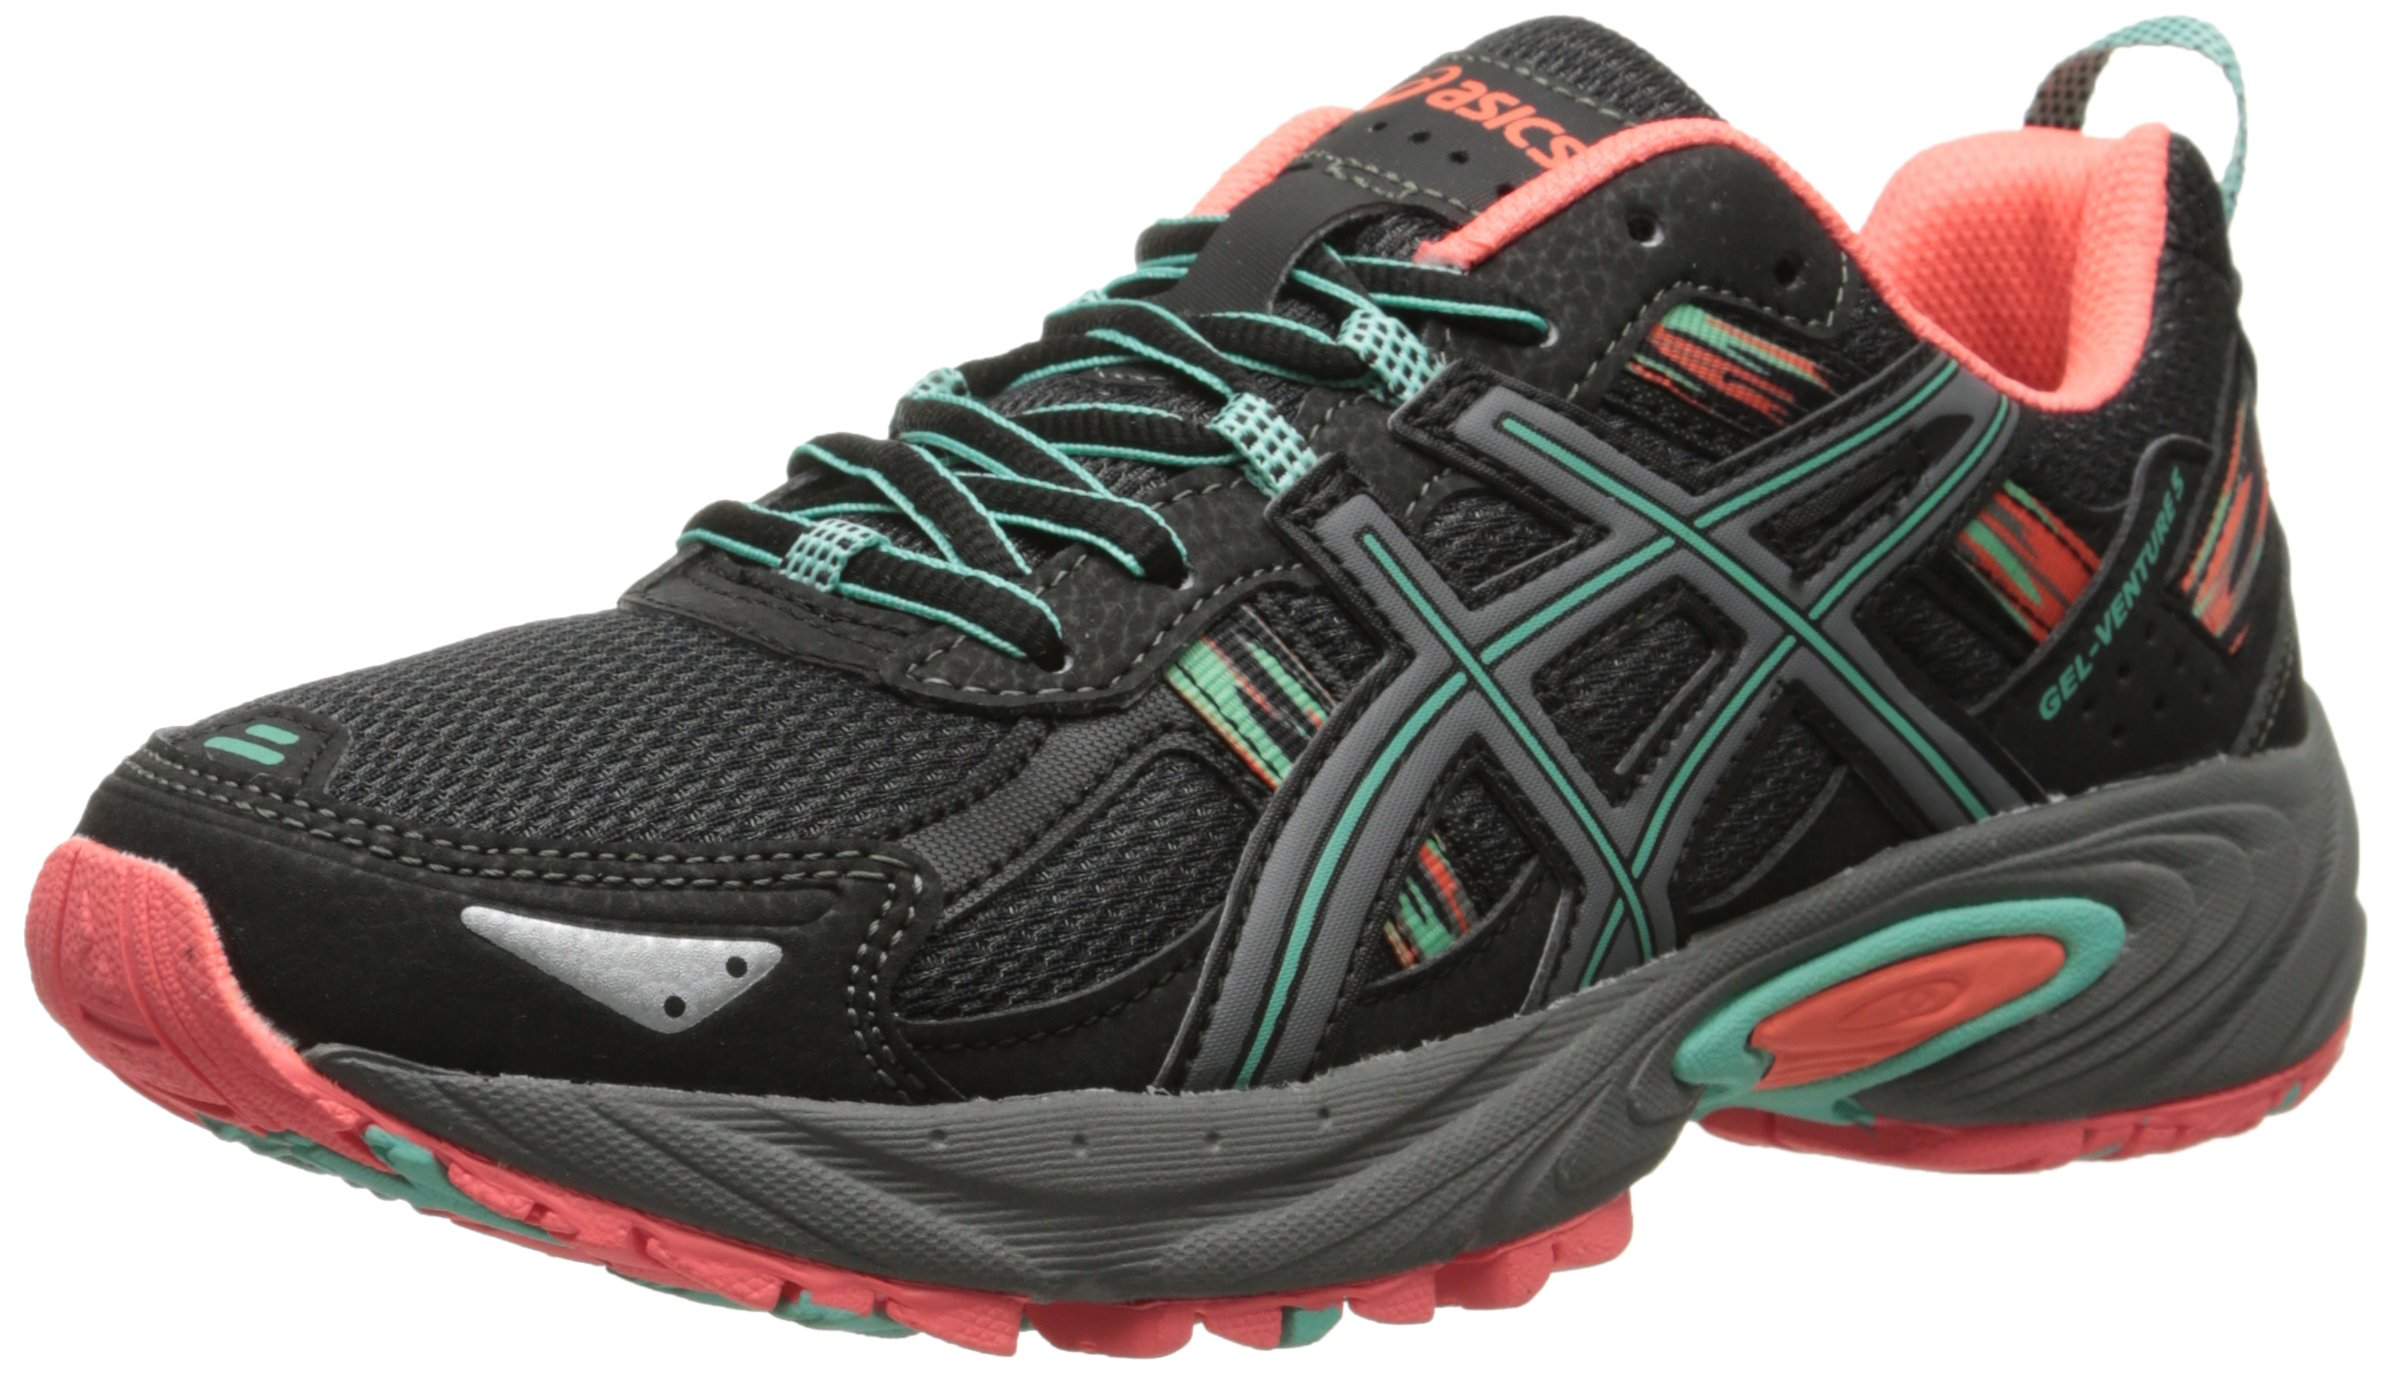 ASICS Women's Gel-venture 5 Running Shoe, Black/Aqua Mint/Flash Coral, 6 M US